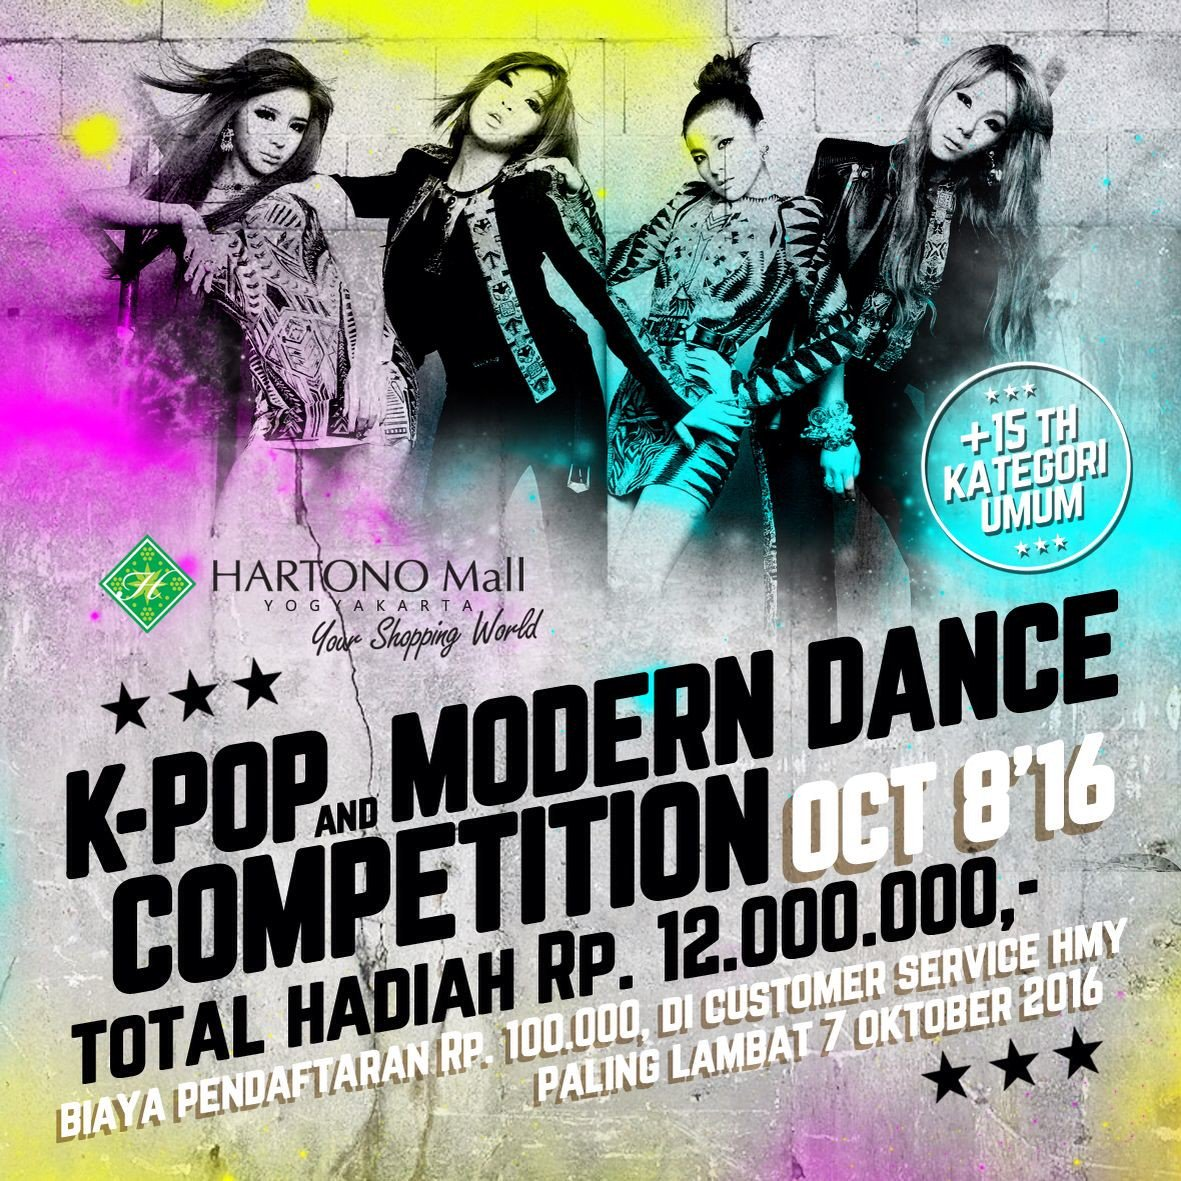 K-Pop And Modern Dance Competition - Kotajogja.com